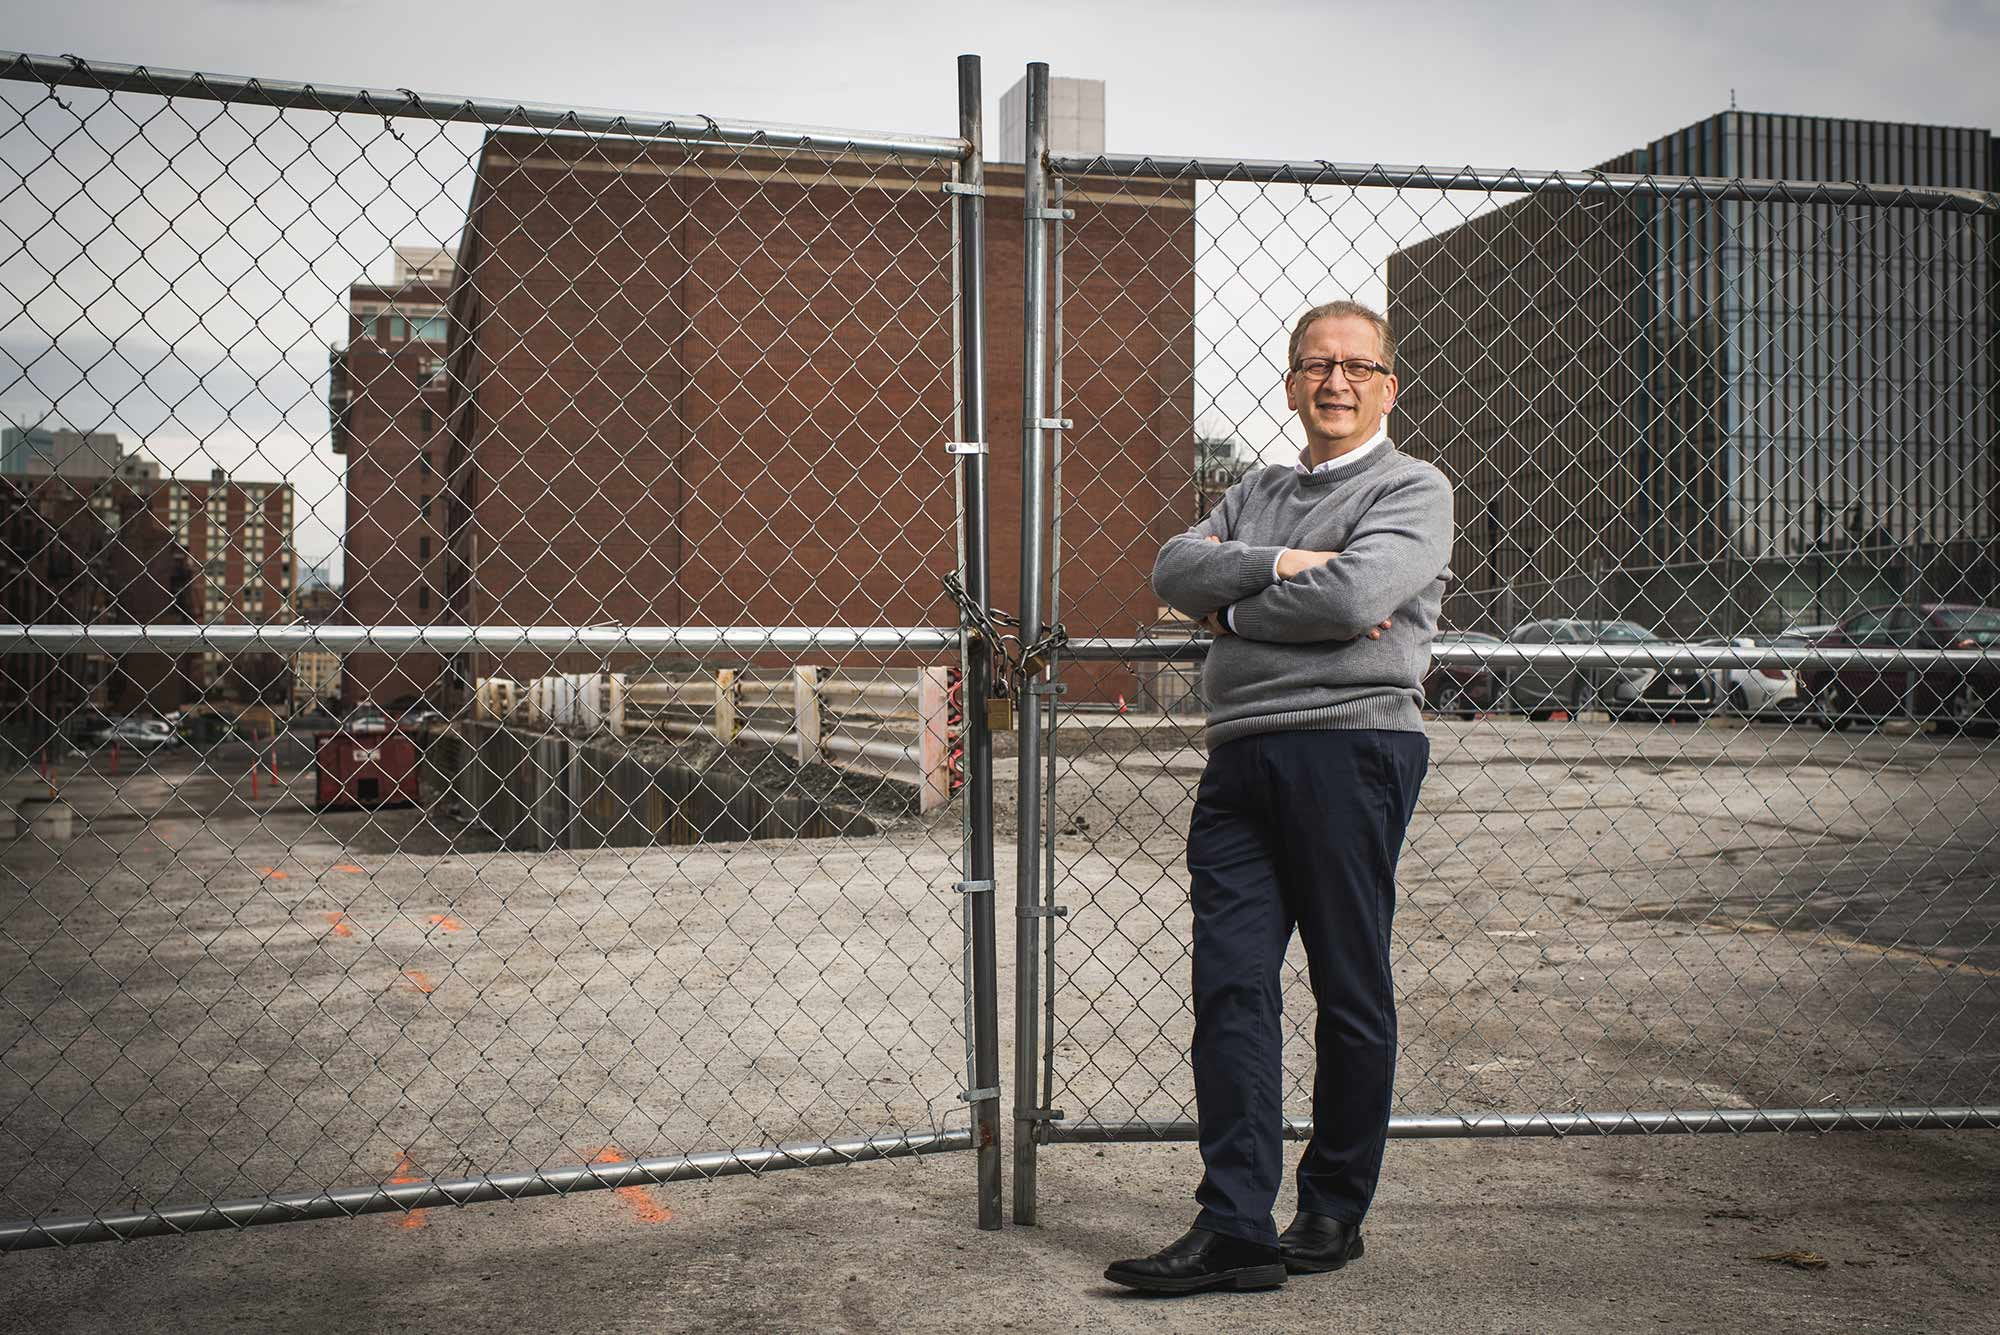 Portrait of Azer Bestavros who looks through a chain link fence towards the site of BU's new Data Sciences building.